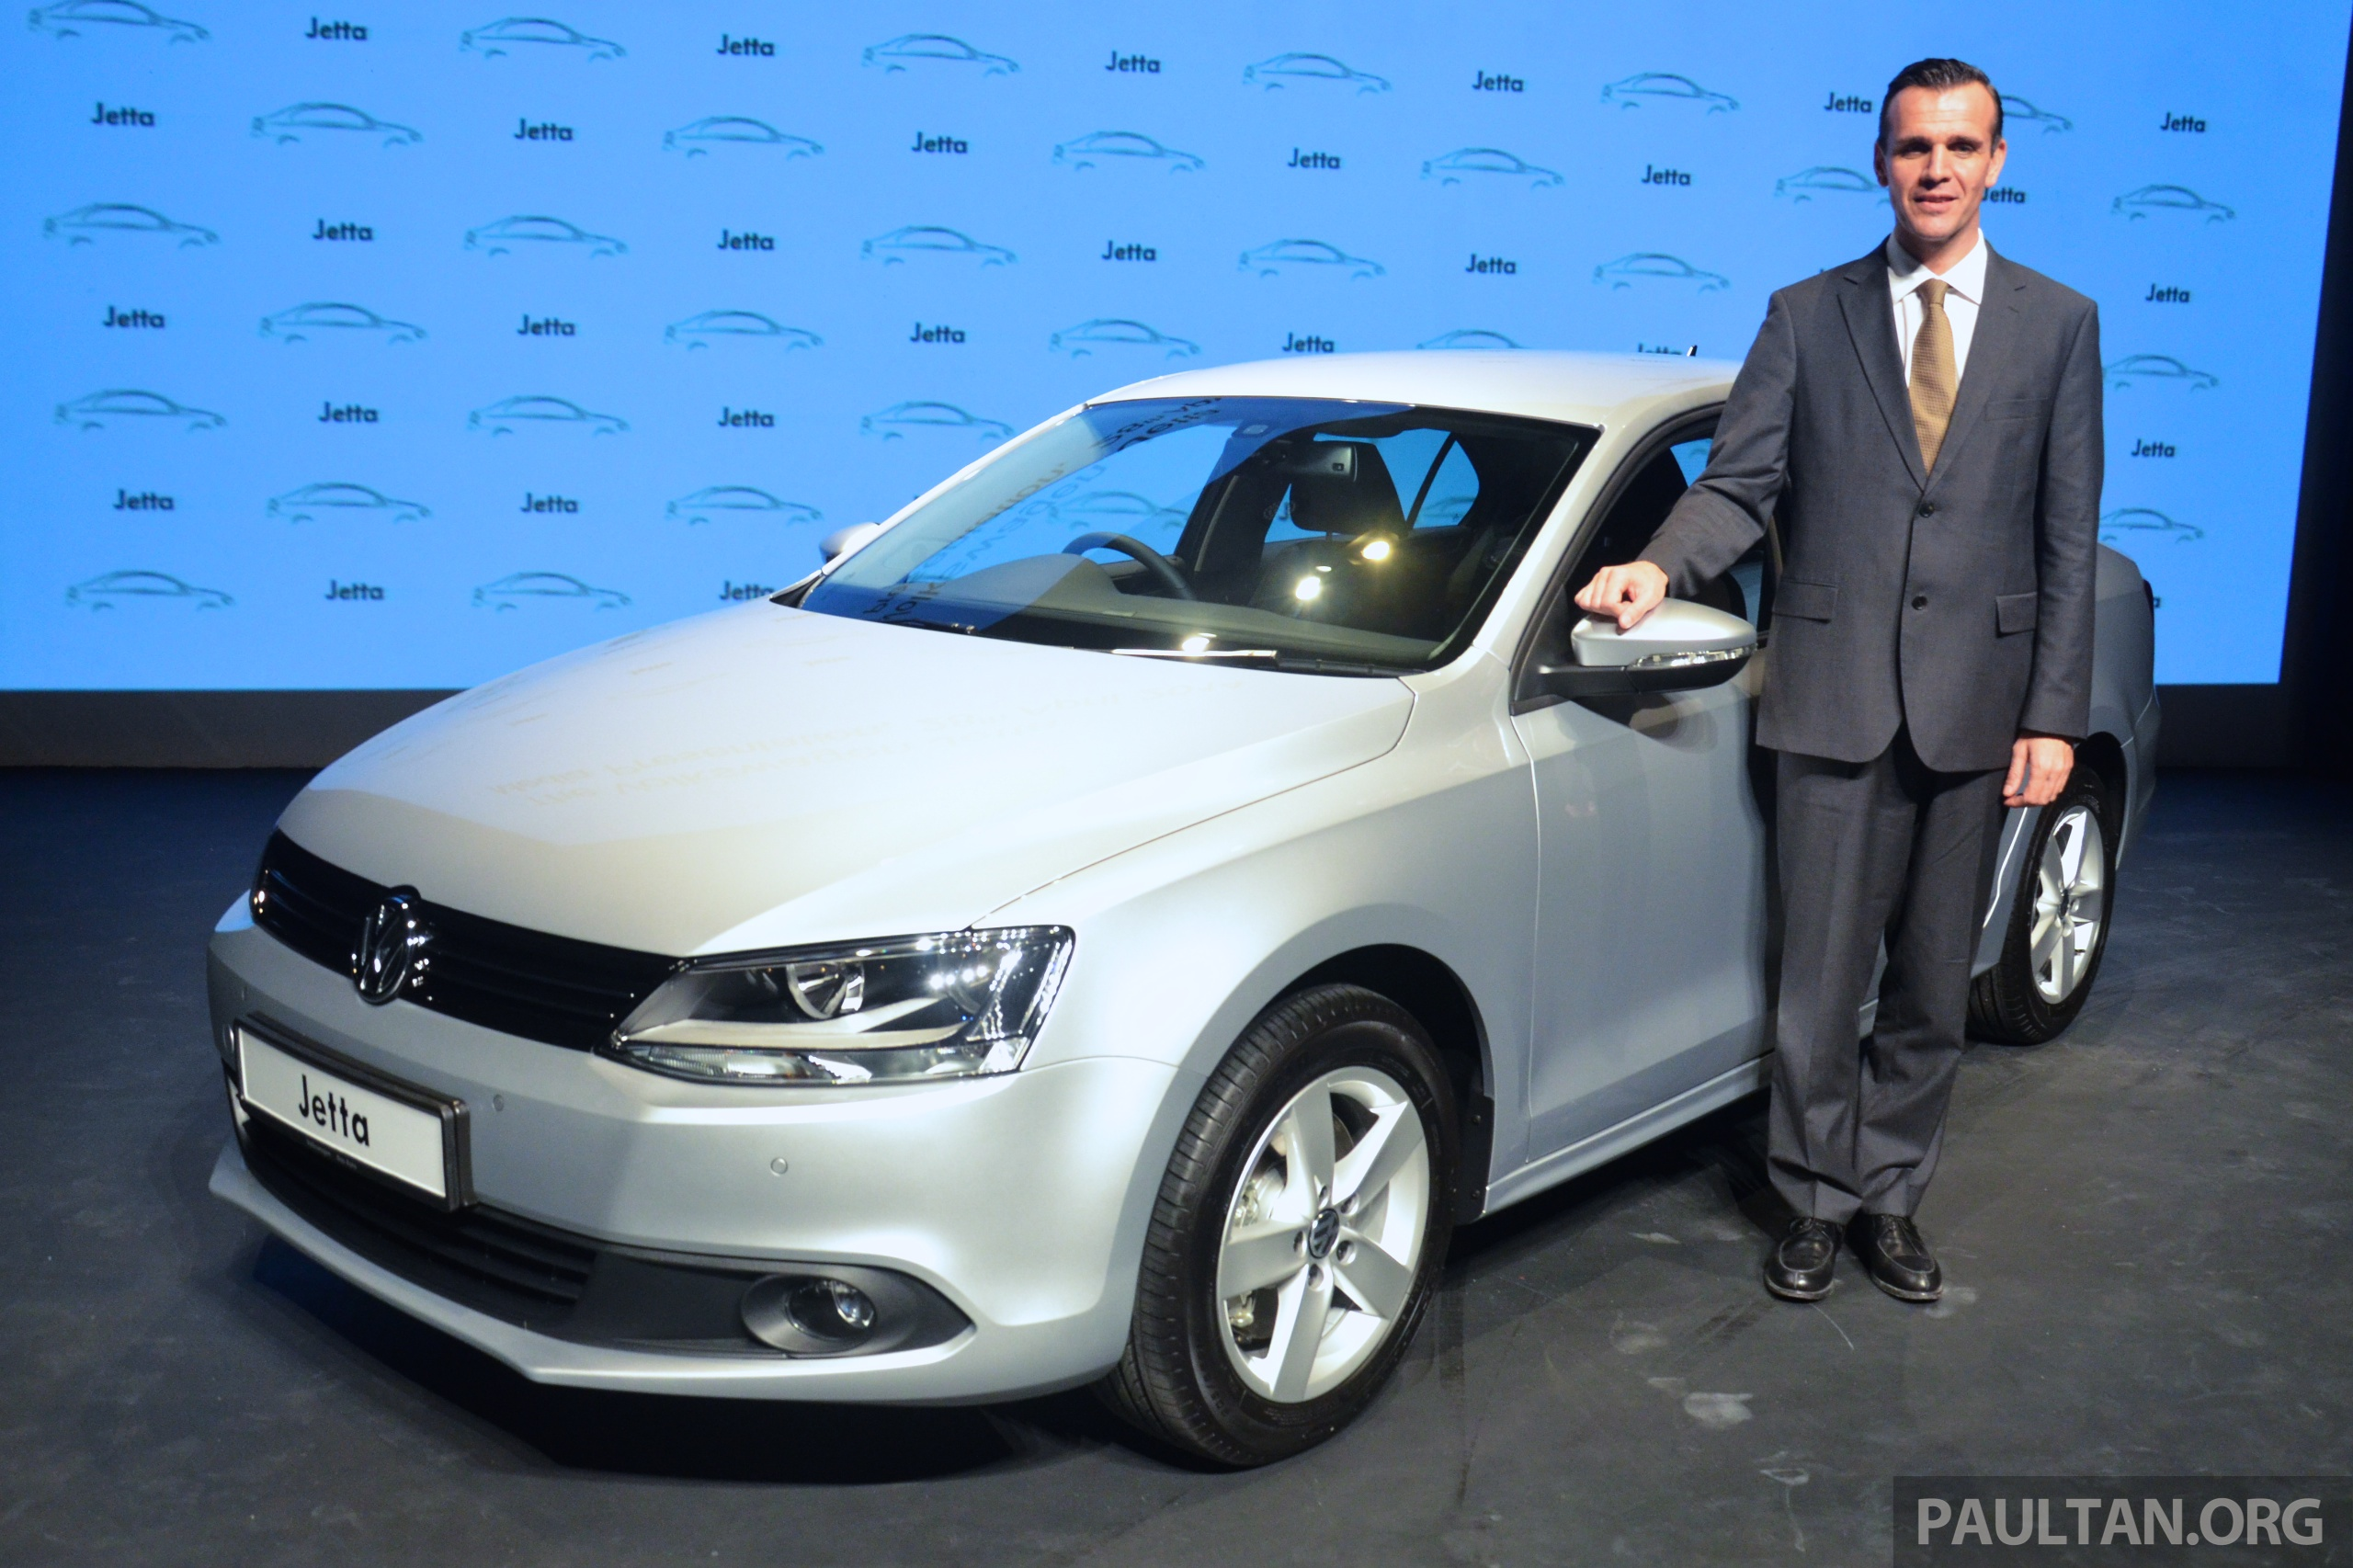 DRB-Hicom to export Volkswagen cars to Indonesia